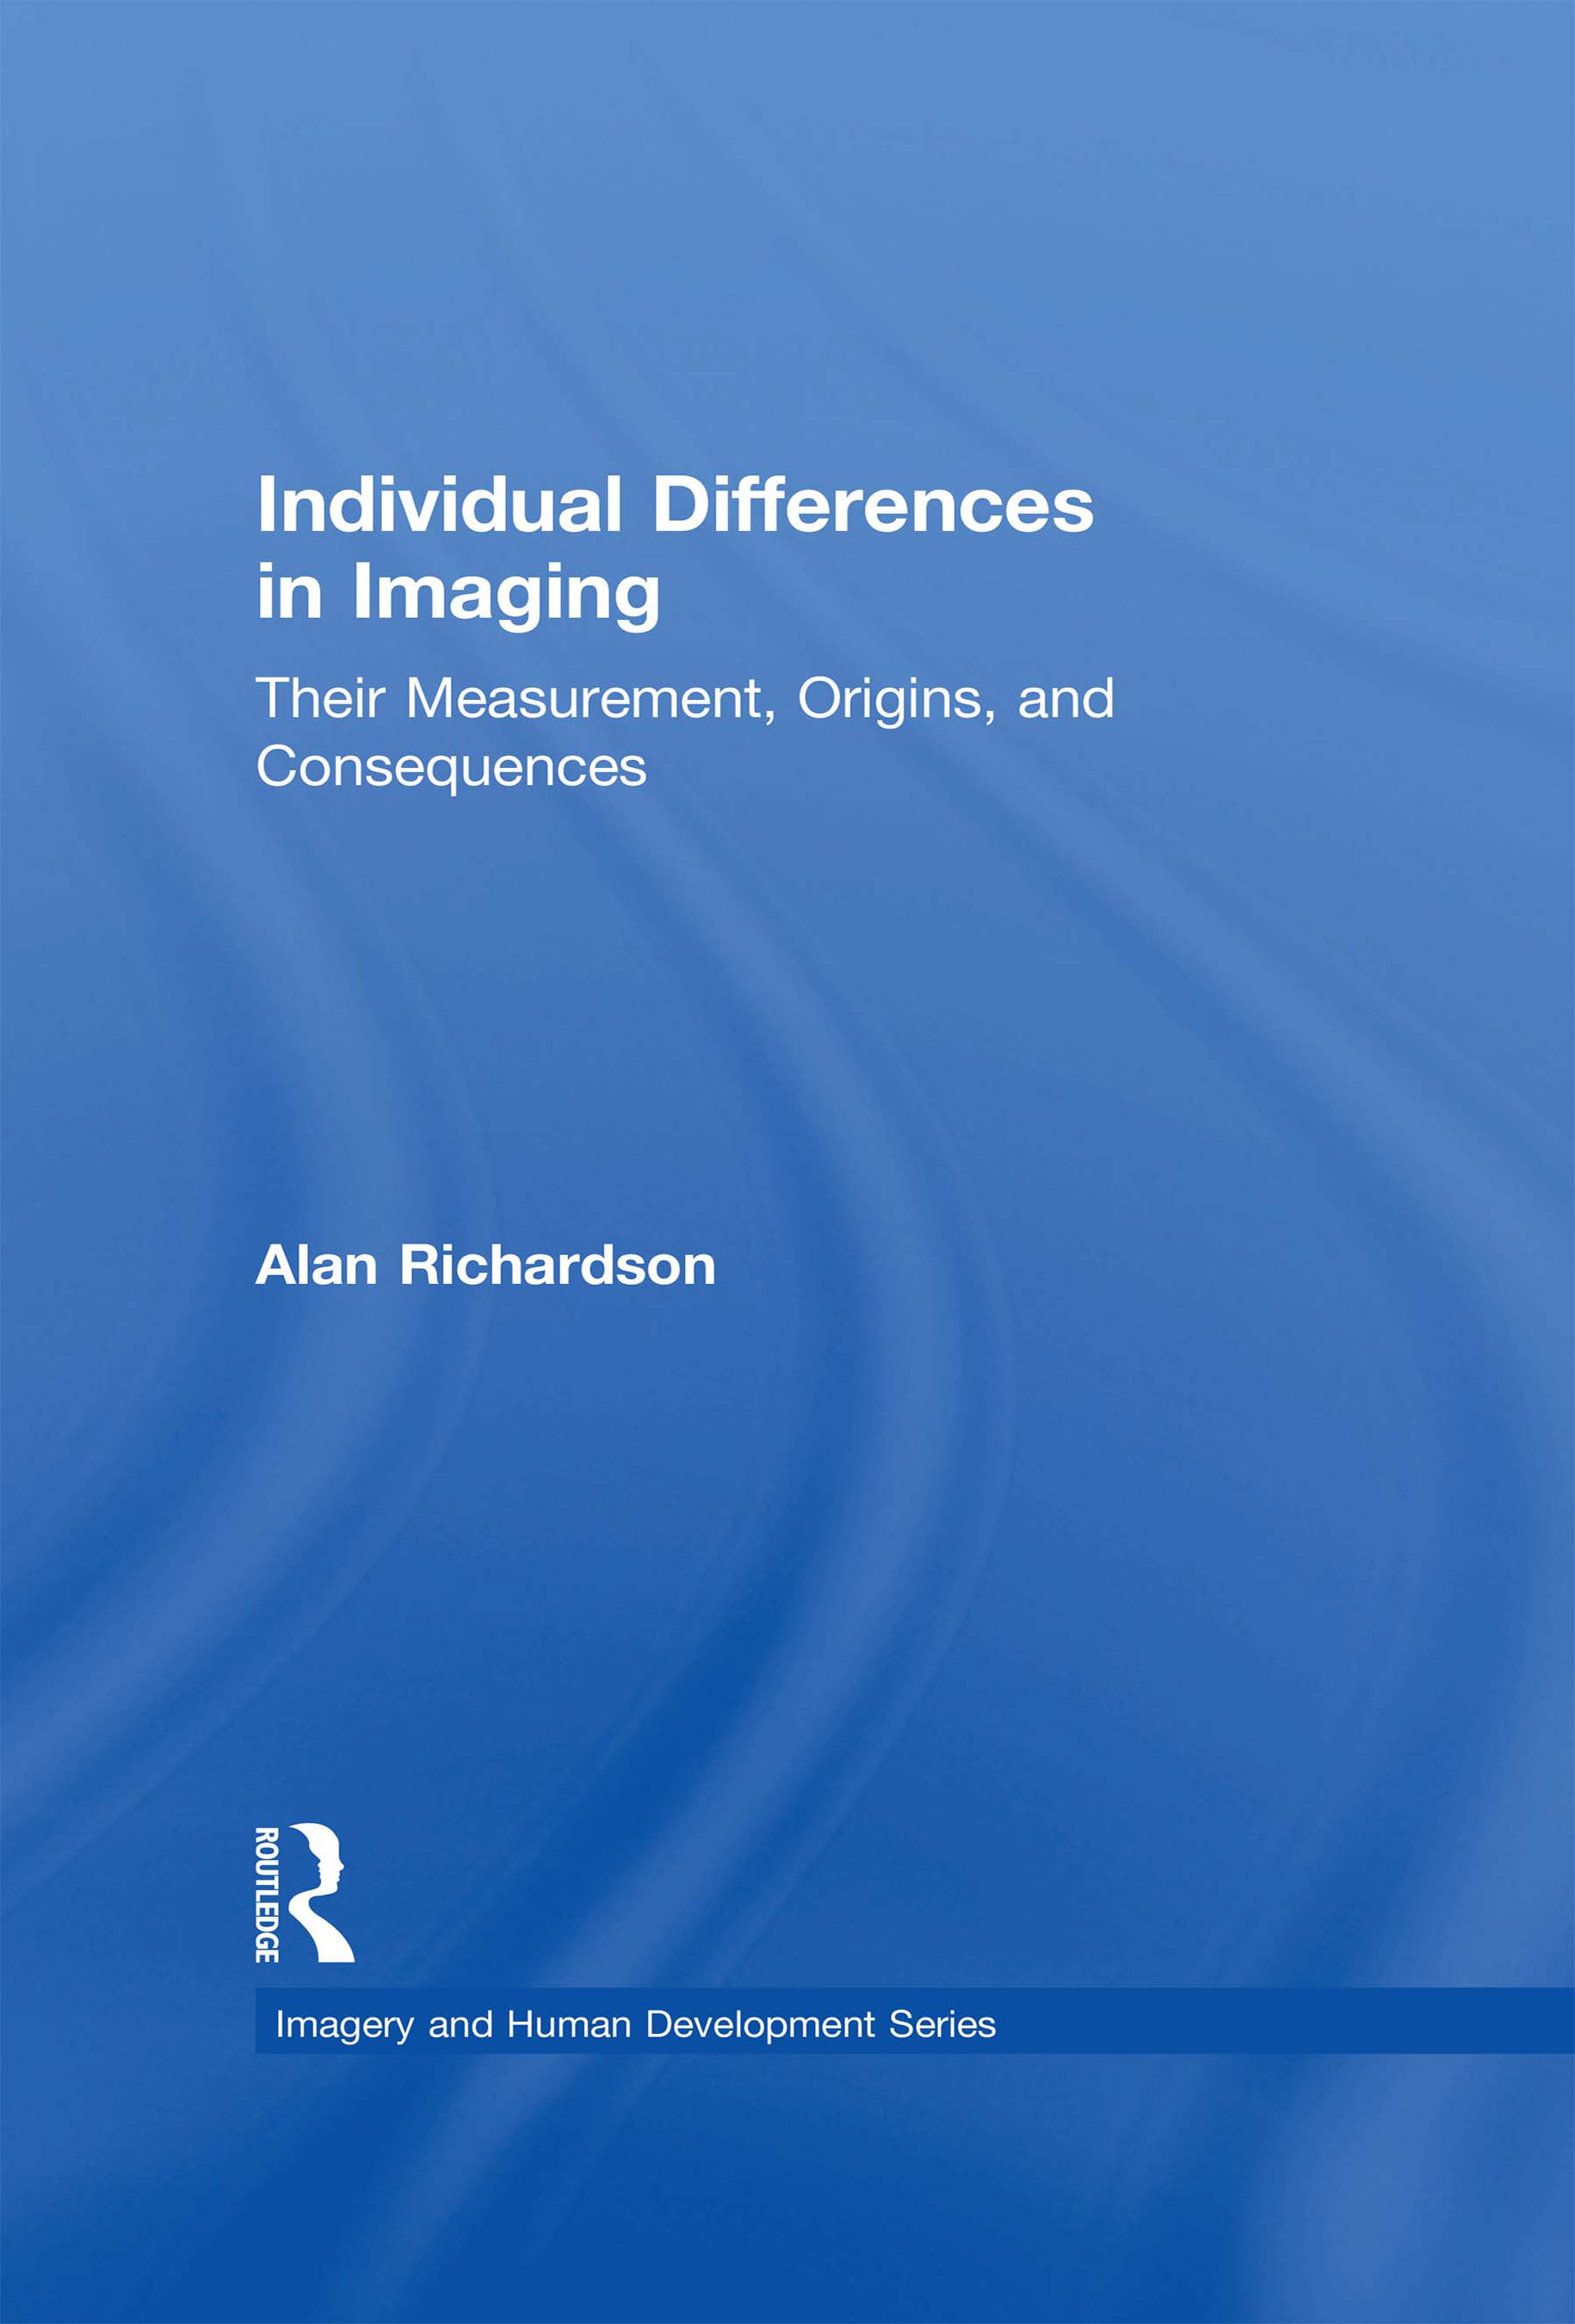 Individual Differences in Imaging: Their Measurement, Origins, and Consequences book cover